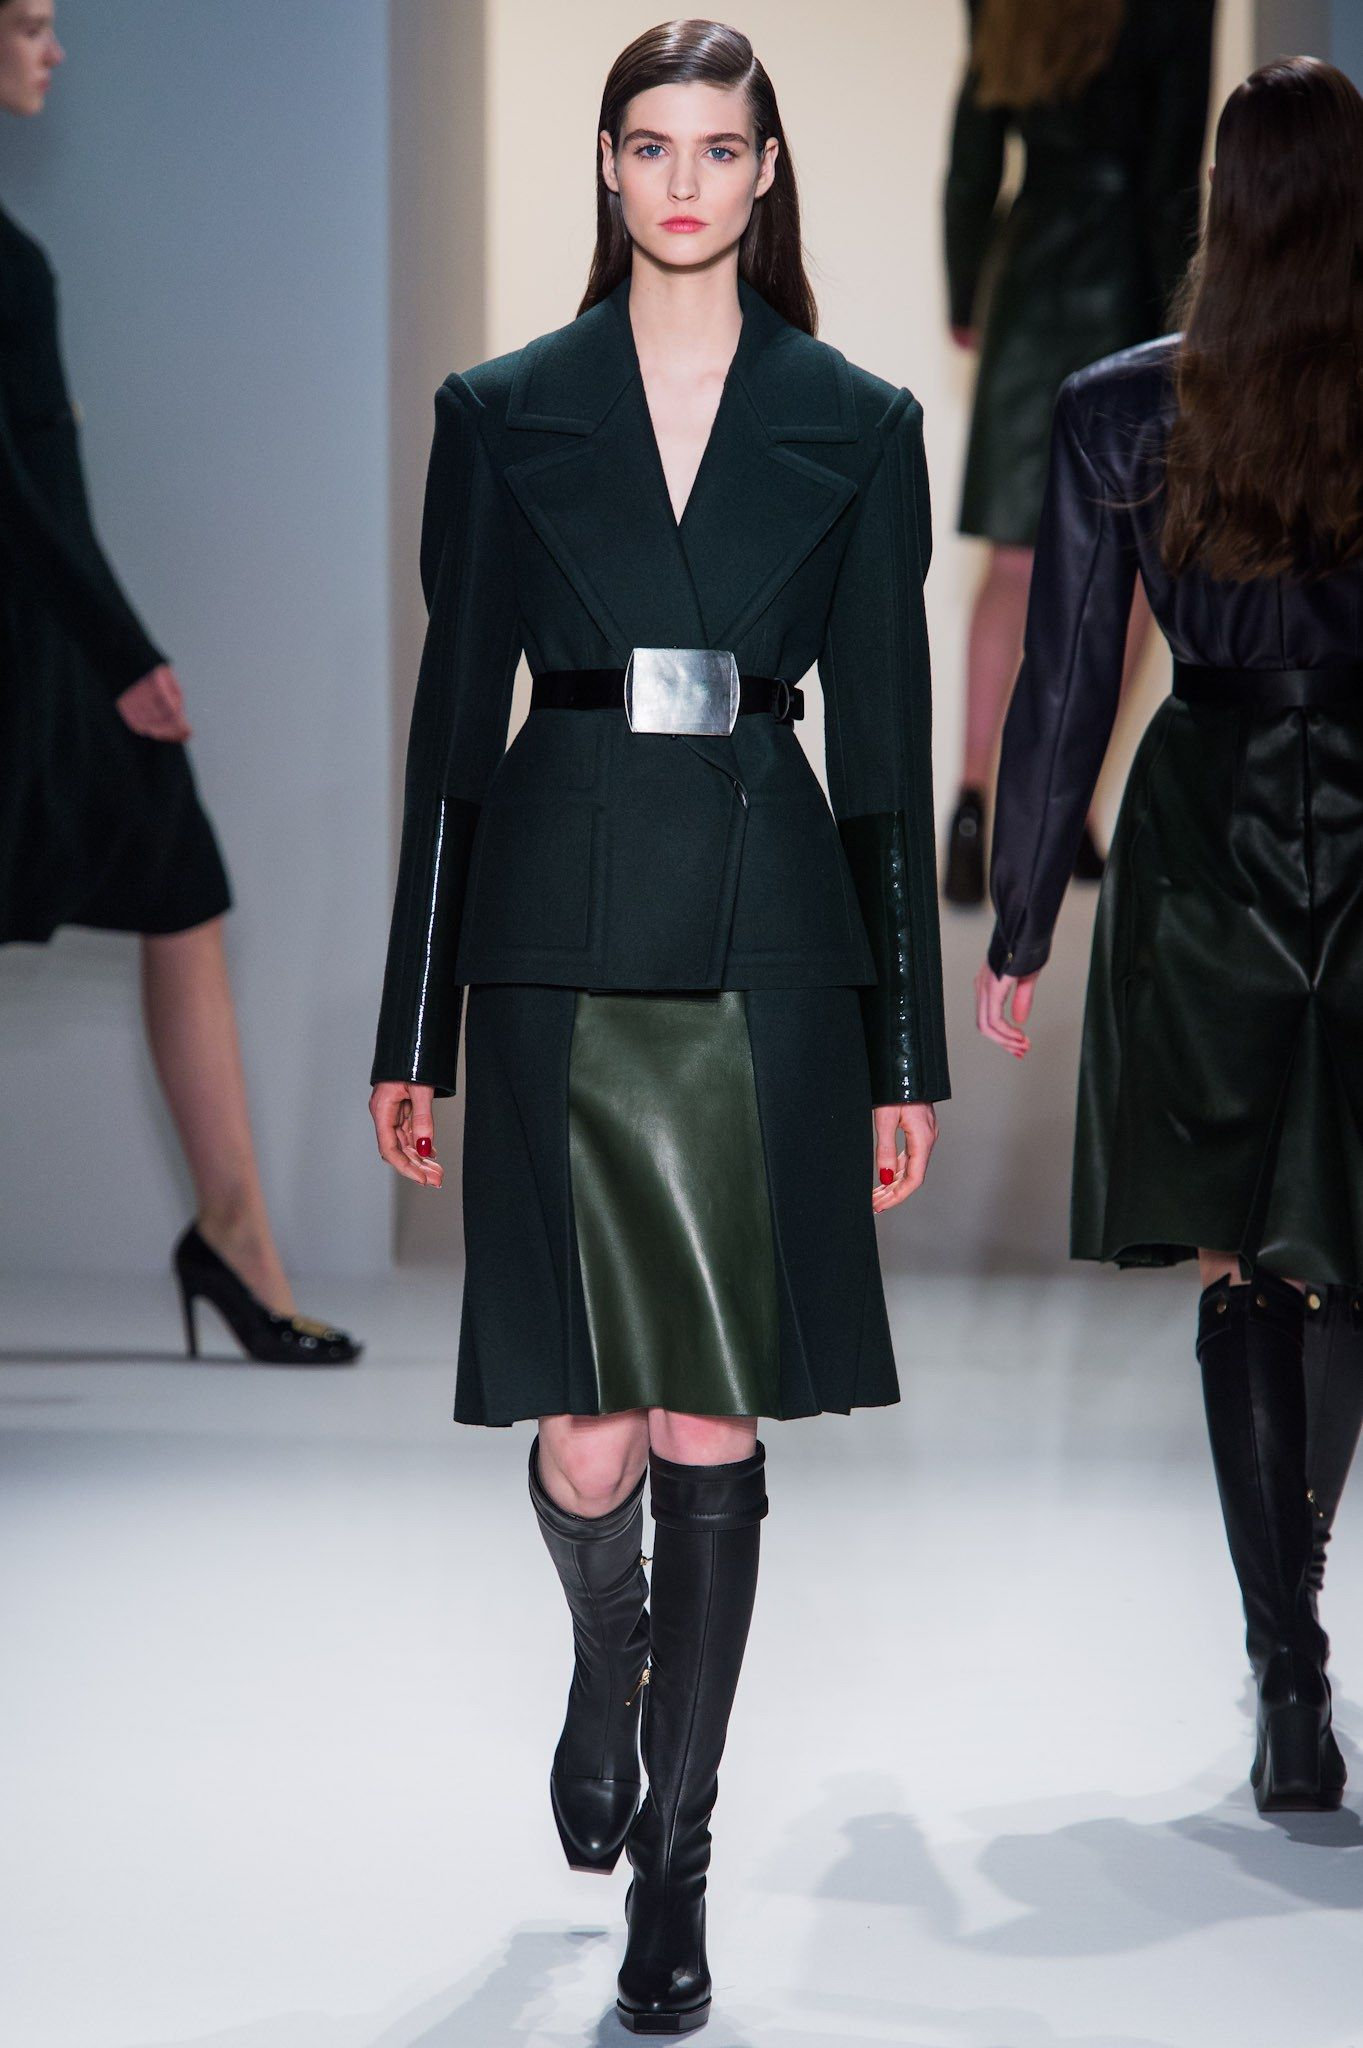 Calvin Klein Collection Fall 2013 Ready-to-Wear Fashion Show - Manon Leloup